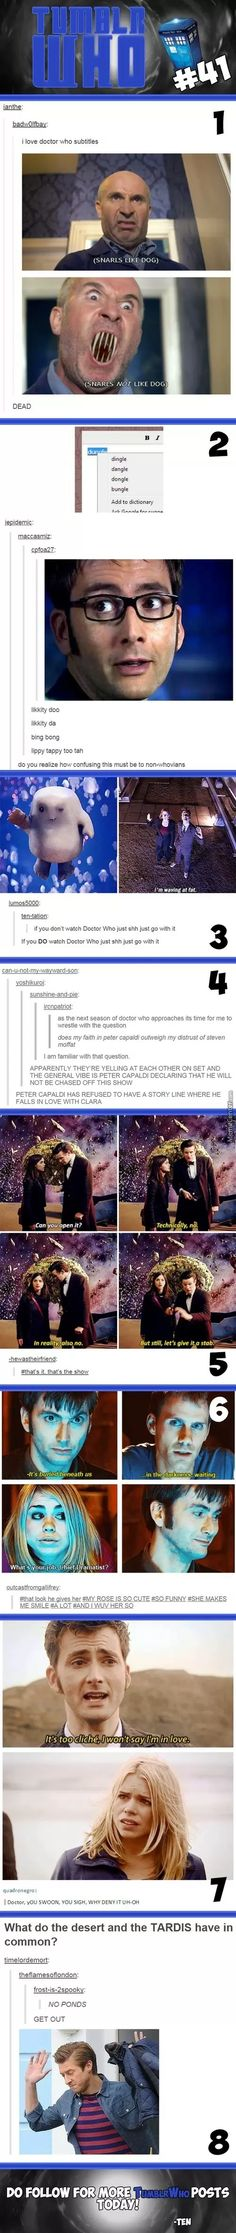 You can tell the doctor loves rose very much.. BUT THAT SON OF A BITCH RUINED IT ALL ON THE EPISODE DOOMSDAY. *slaps the doctor* Doctor: ow what was that for Me: GET WITH ROSE ALREADY